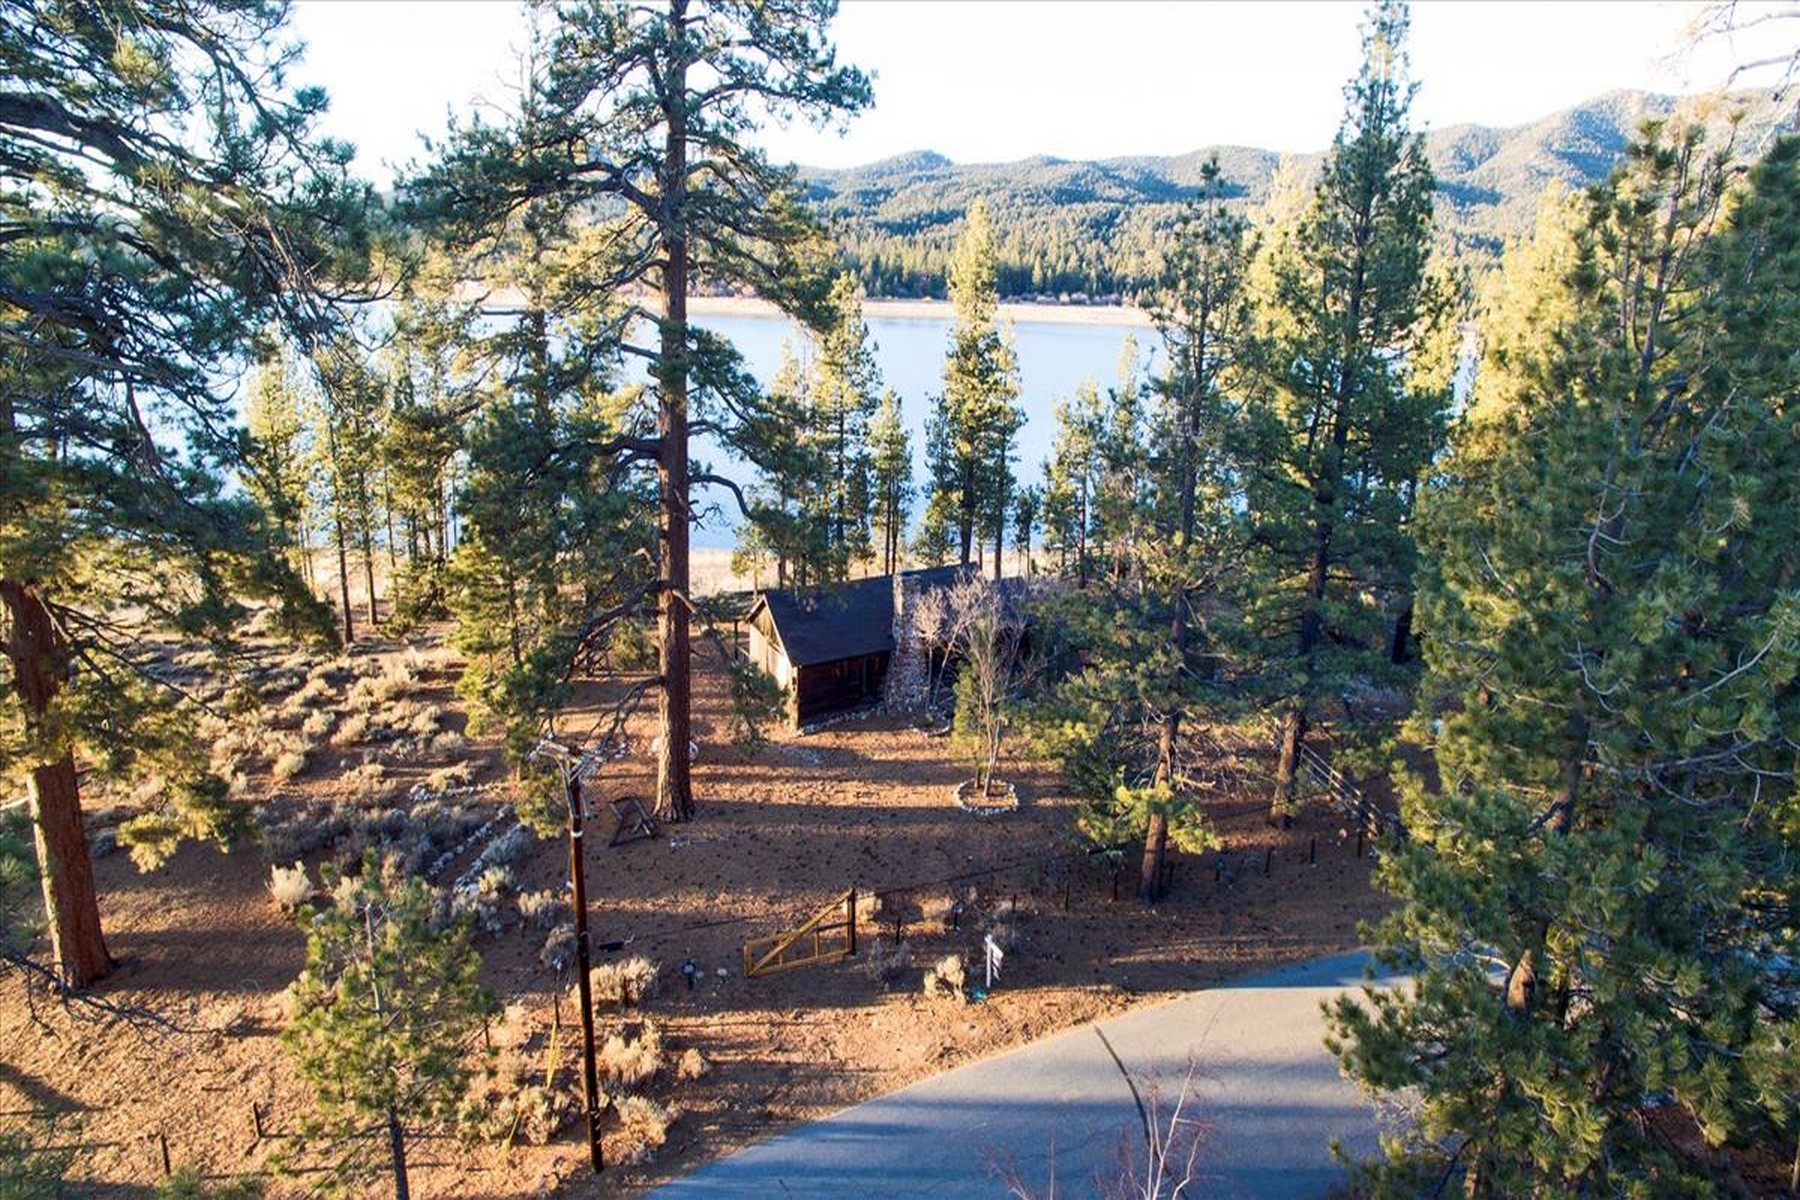 Single Family Homes for Sale at 250 Eagle Drive Big Bear Lake, CA 92315 250 Eagle Drive Big Bear Lake, California 92315 United States